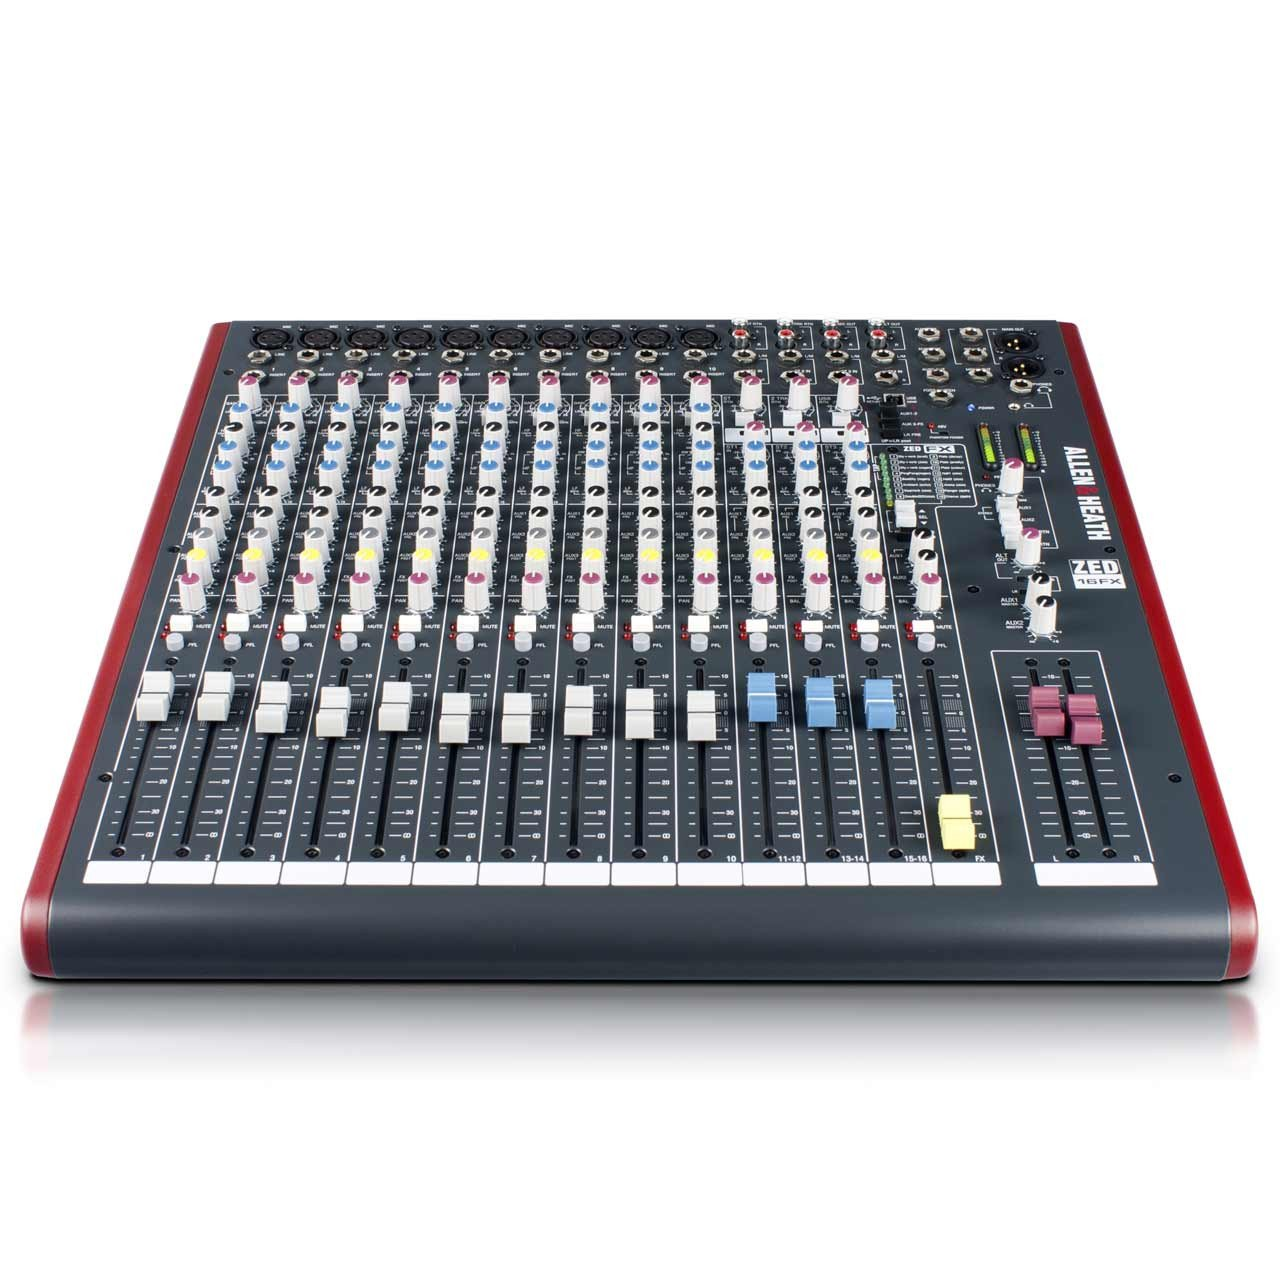 Analog Mixers - Allen & Heath ZED-16FX - Analogue Mixer With USB